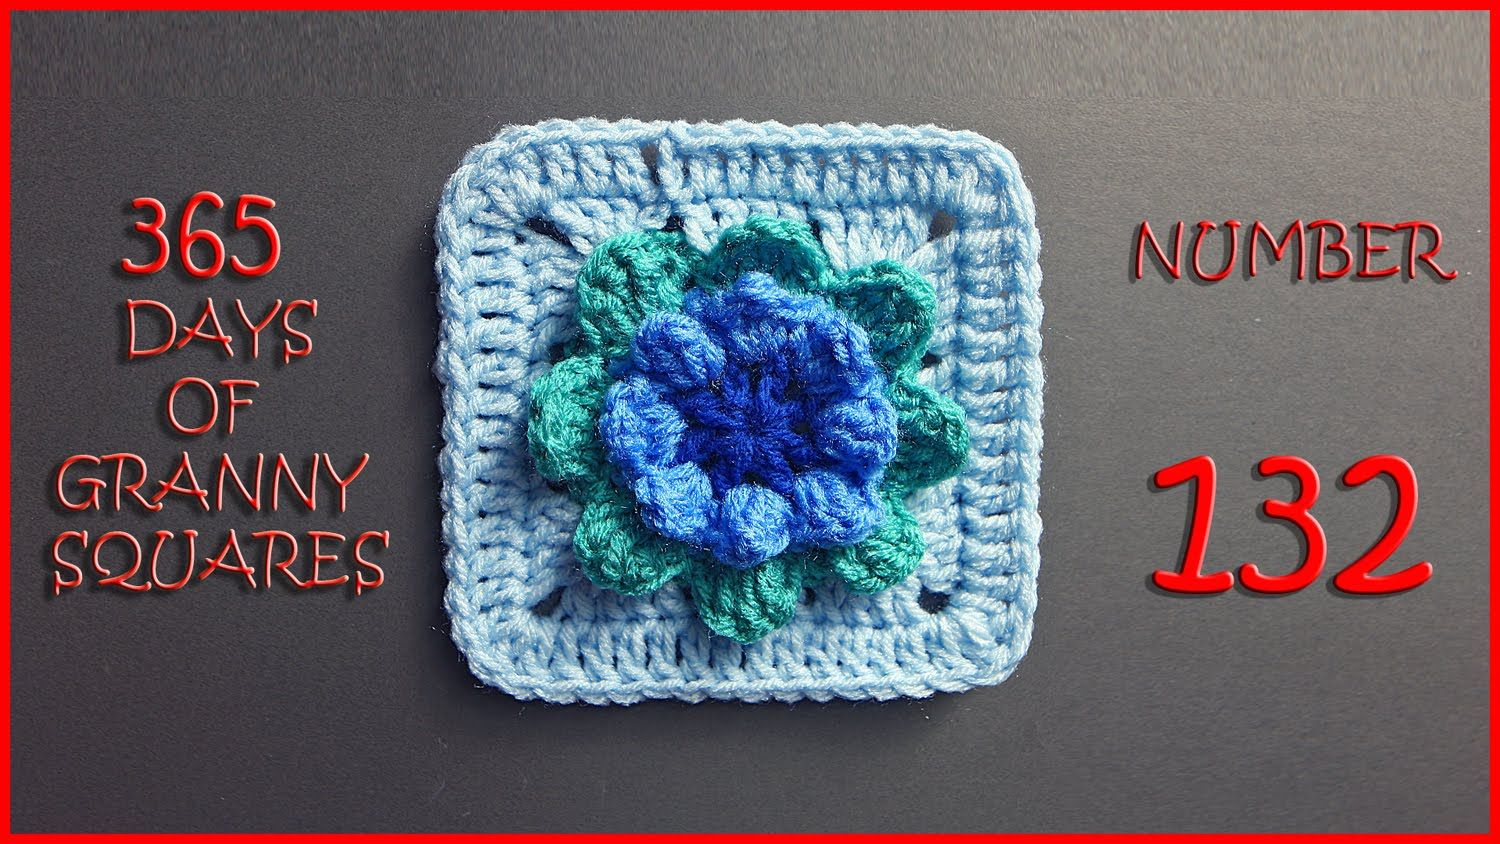 365 Days of Granny Squares Number 132 | CROCHET/SQUARES | Pinterest ...